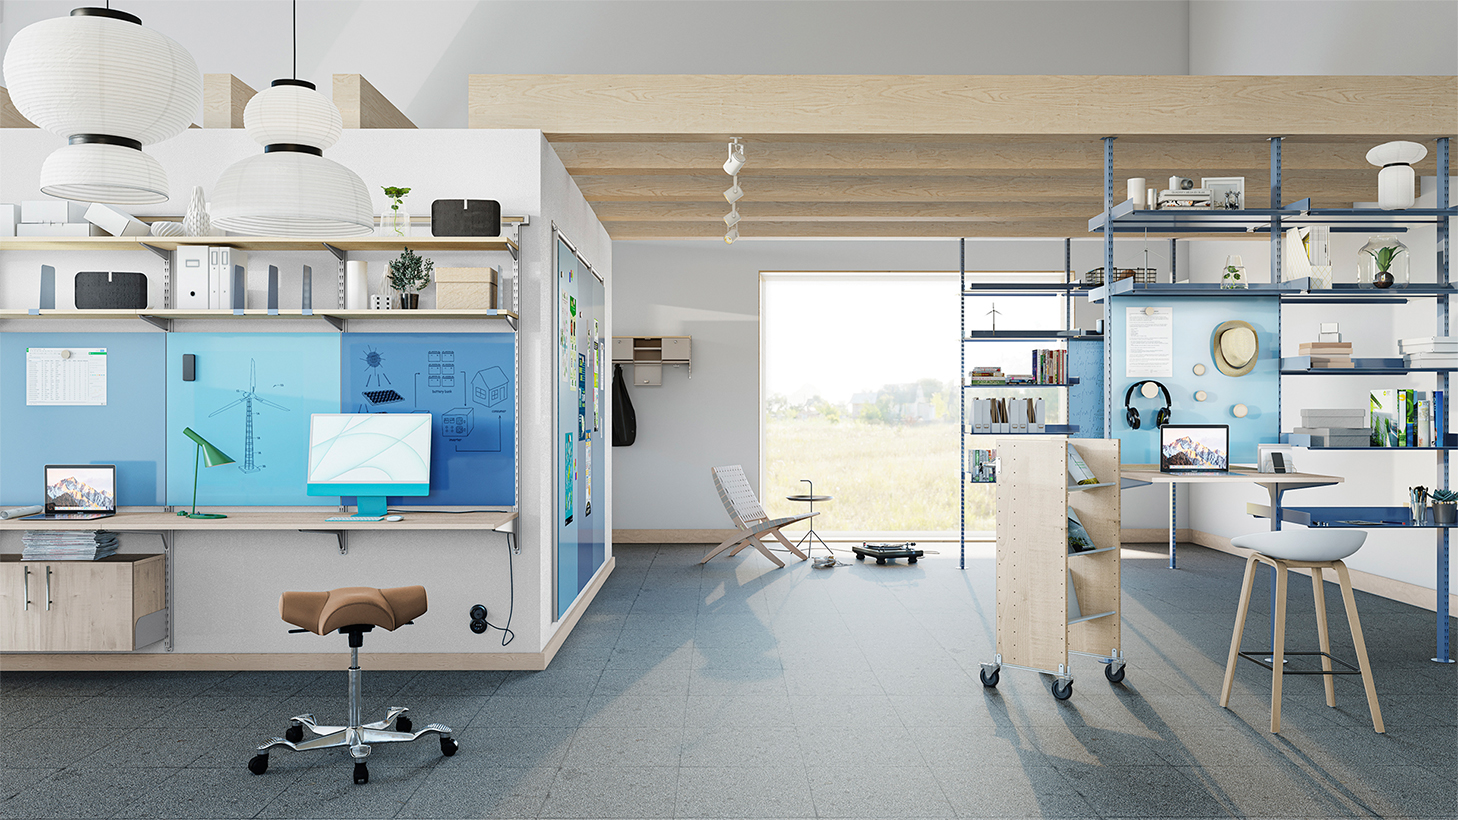 The sustainable office